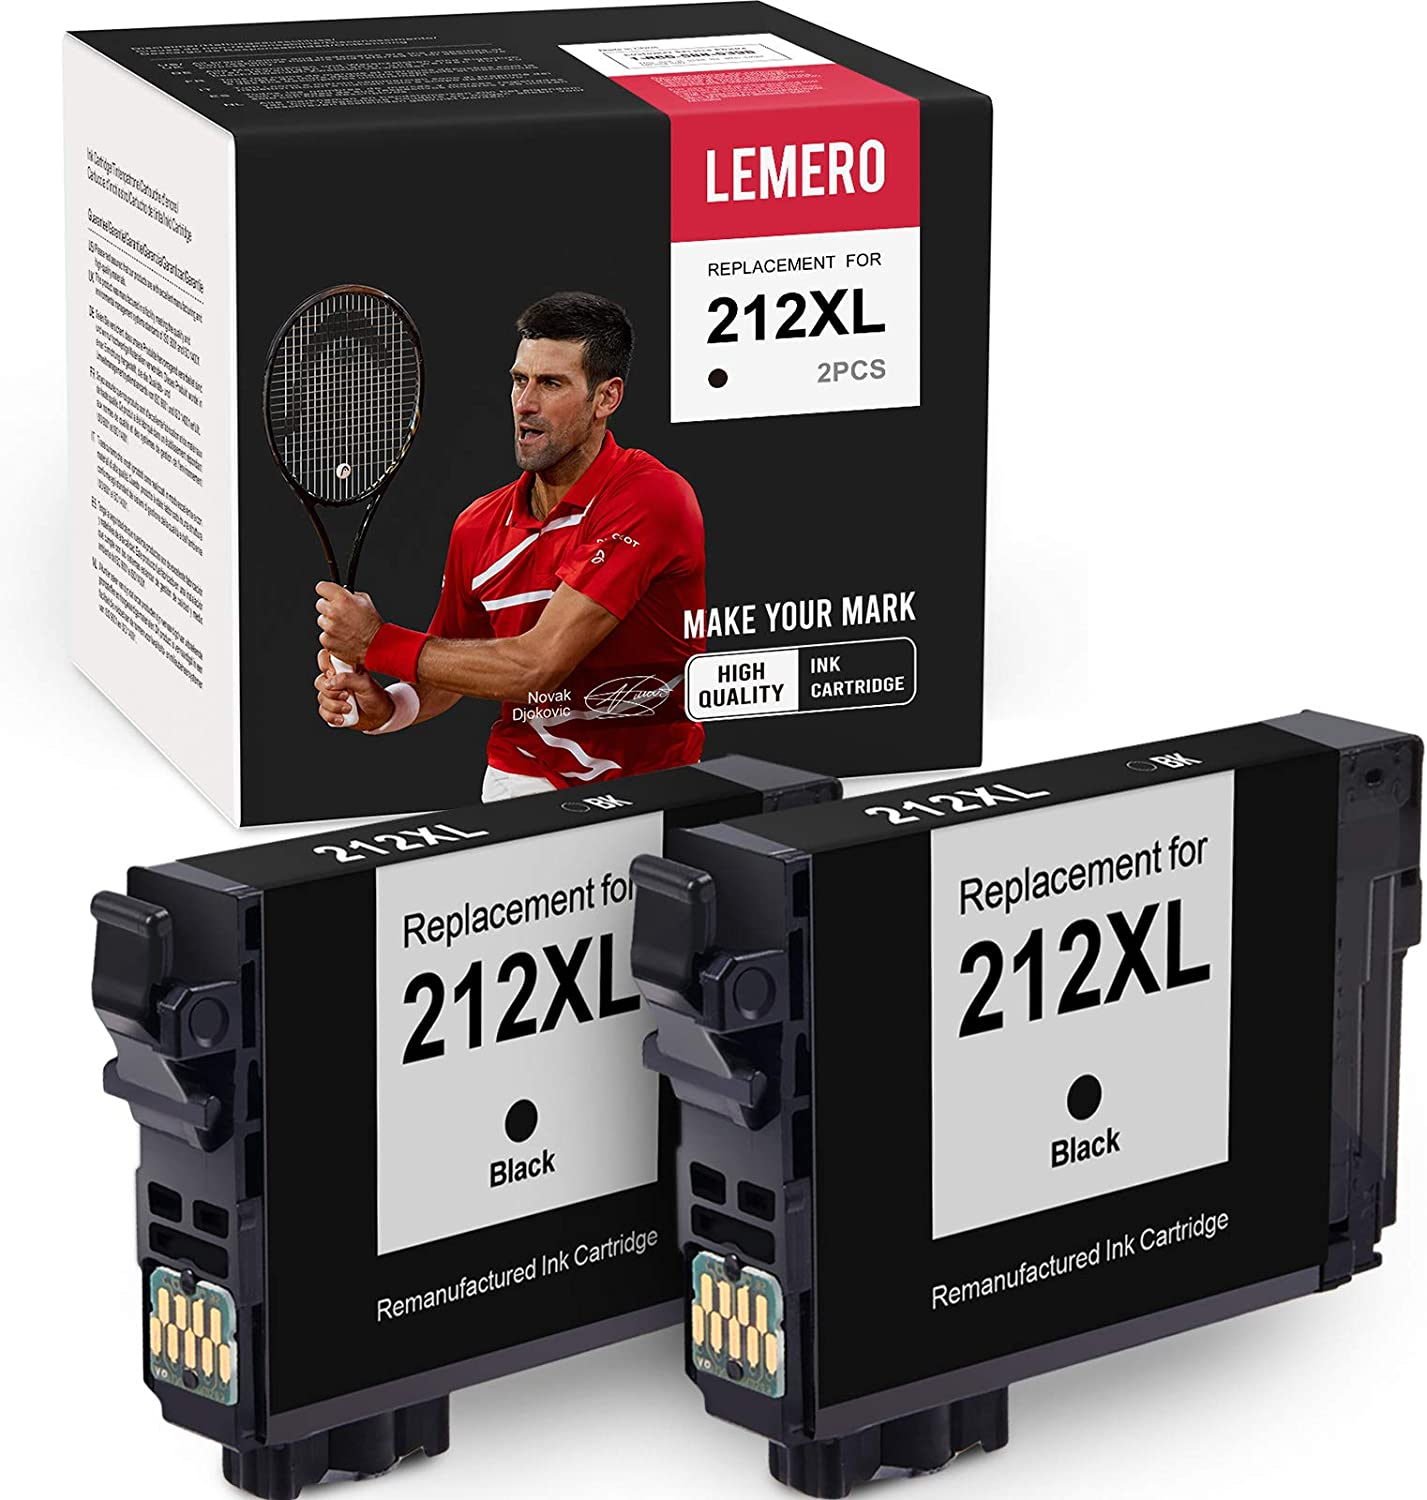 LEMERO Upgarde Chip Remanufactured Ink Cartridge Replacement for Epson 212 212XL T212XL to use with Workforce WF-2830 WF-2850 Expression Home XP-4100 XP-4105 (2 Black)